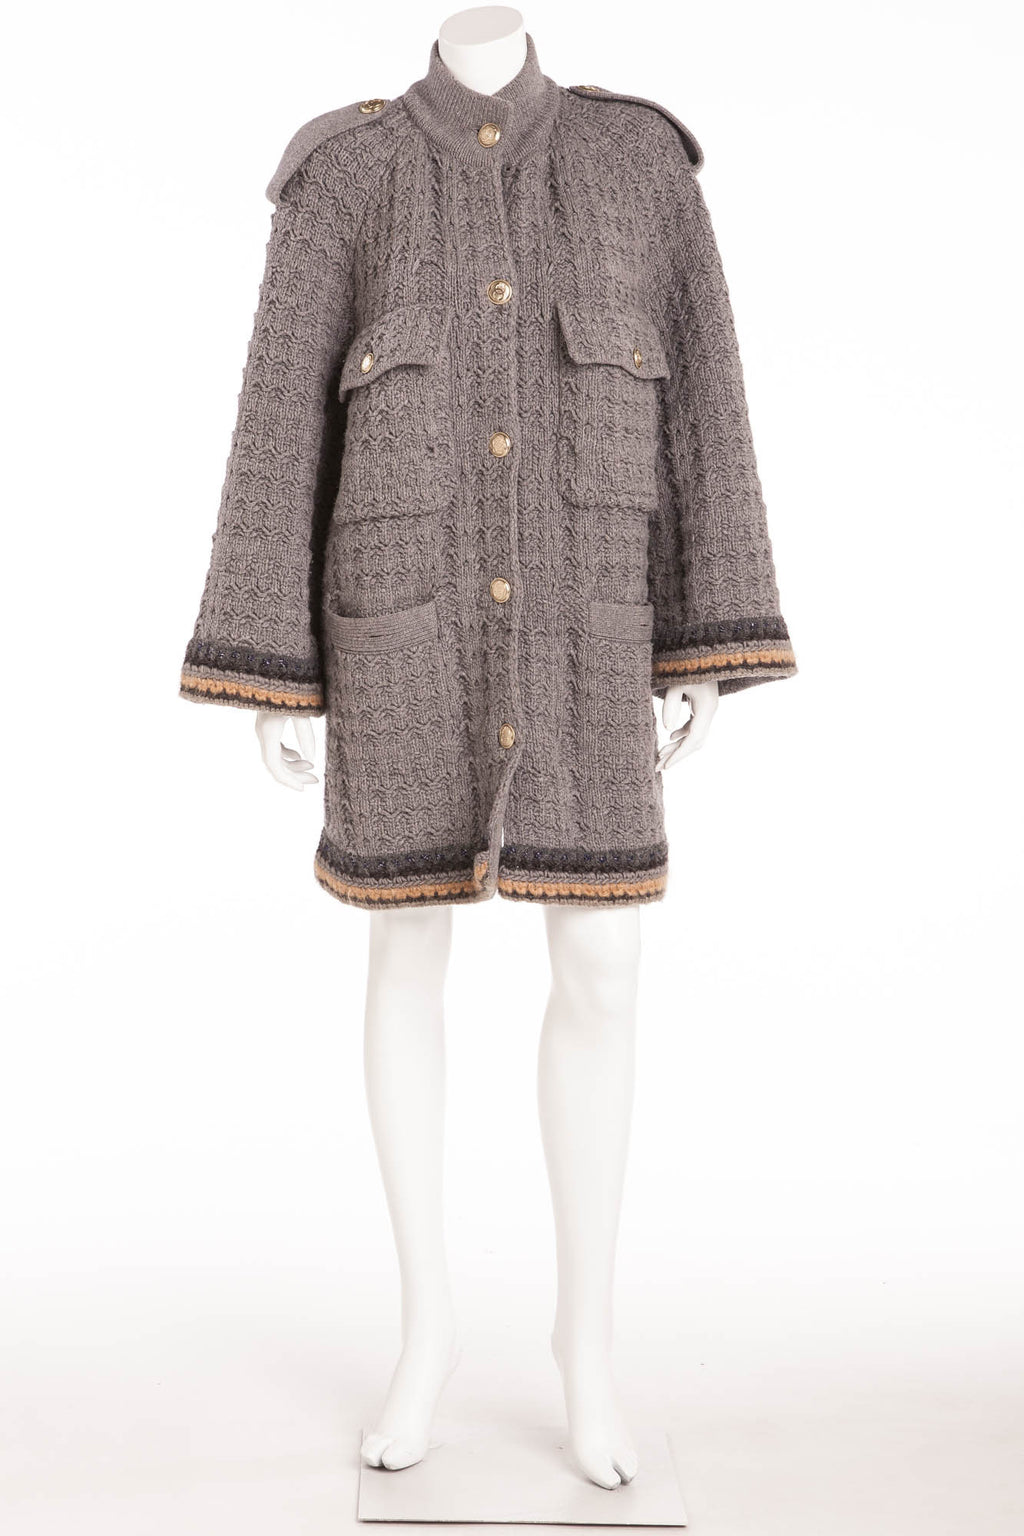 Chanel - Light Gray Long Sleeve Coat - FR 40